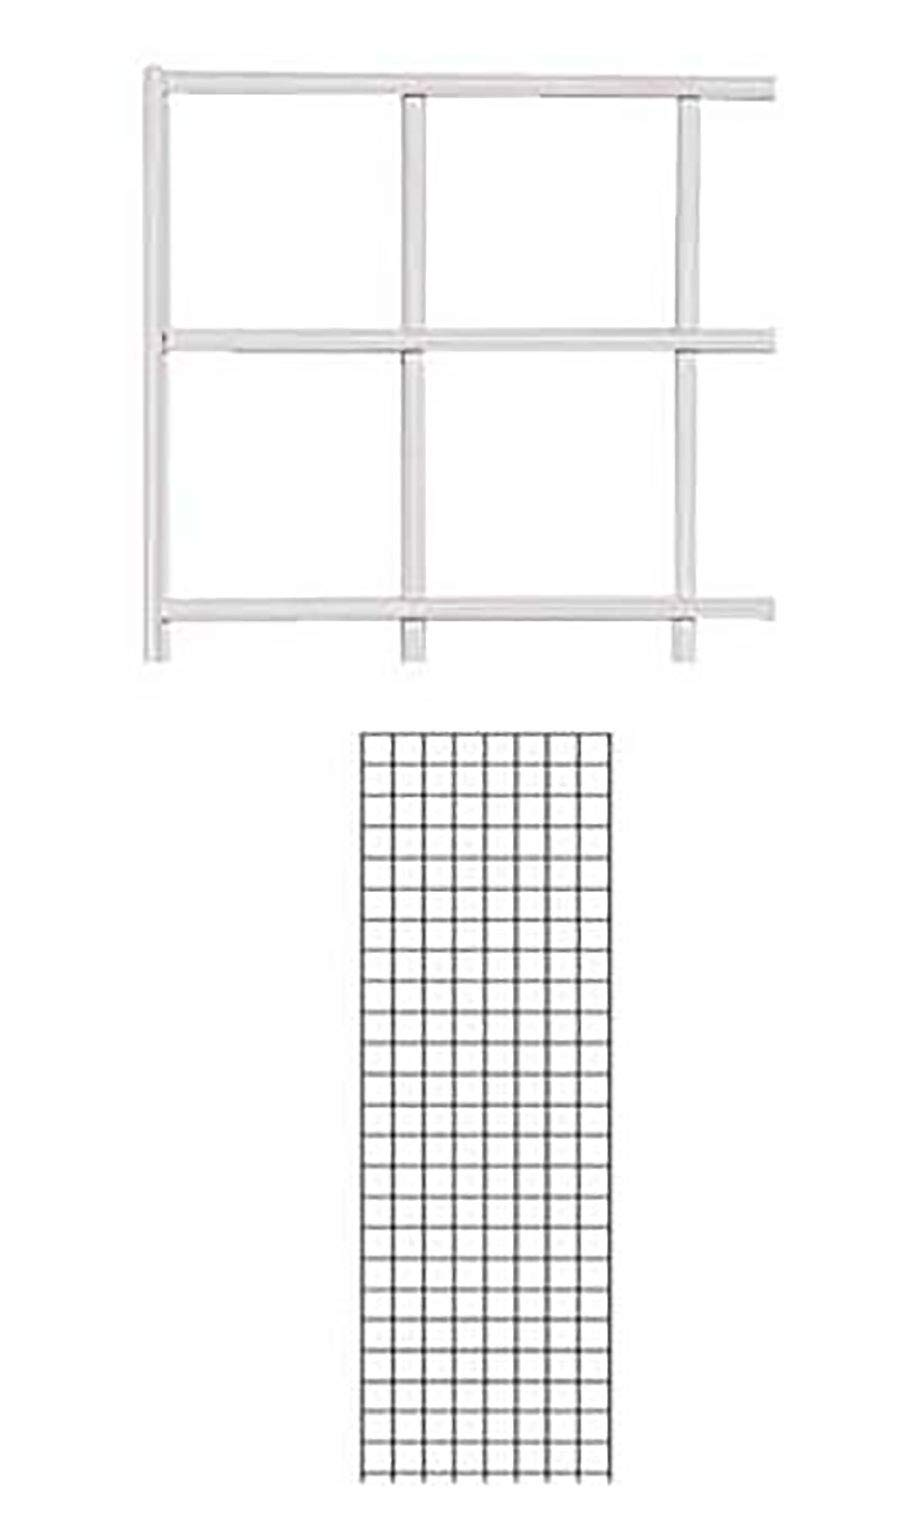 2 x 6 Foot White Wire Grid Panel - 3'' on Center ¼'' Thick